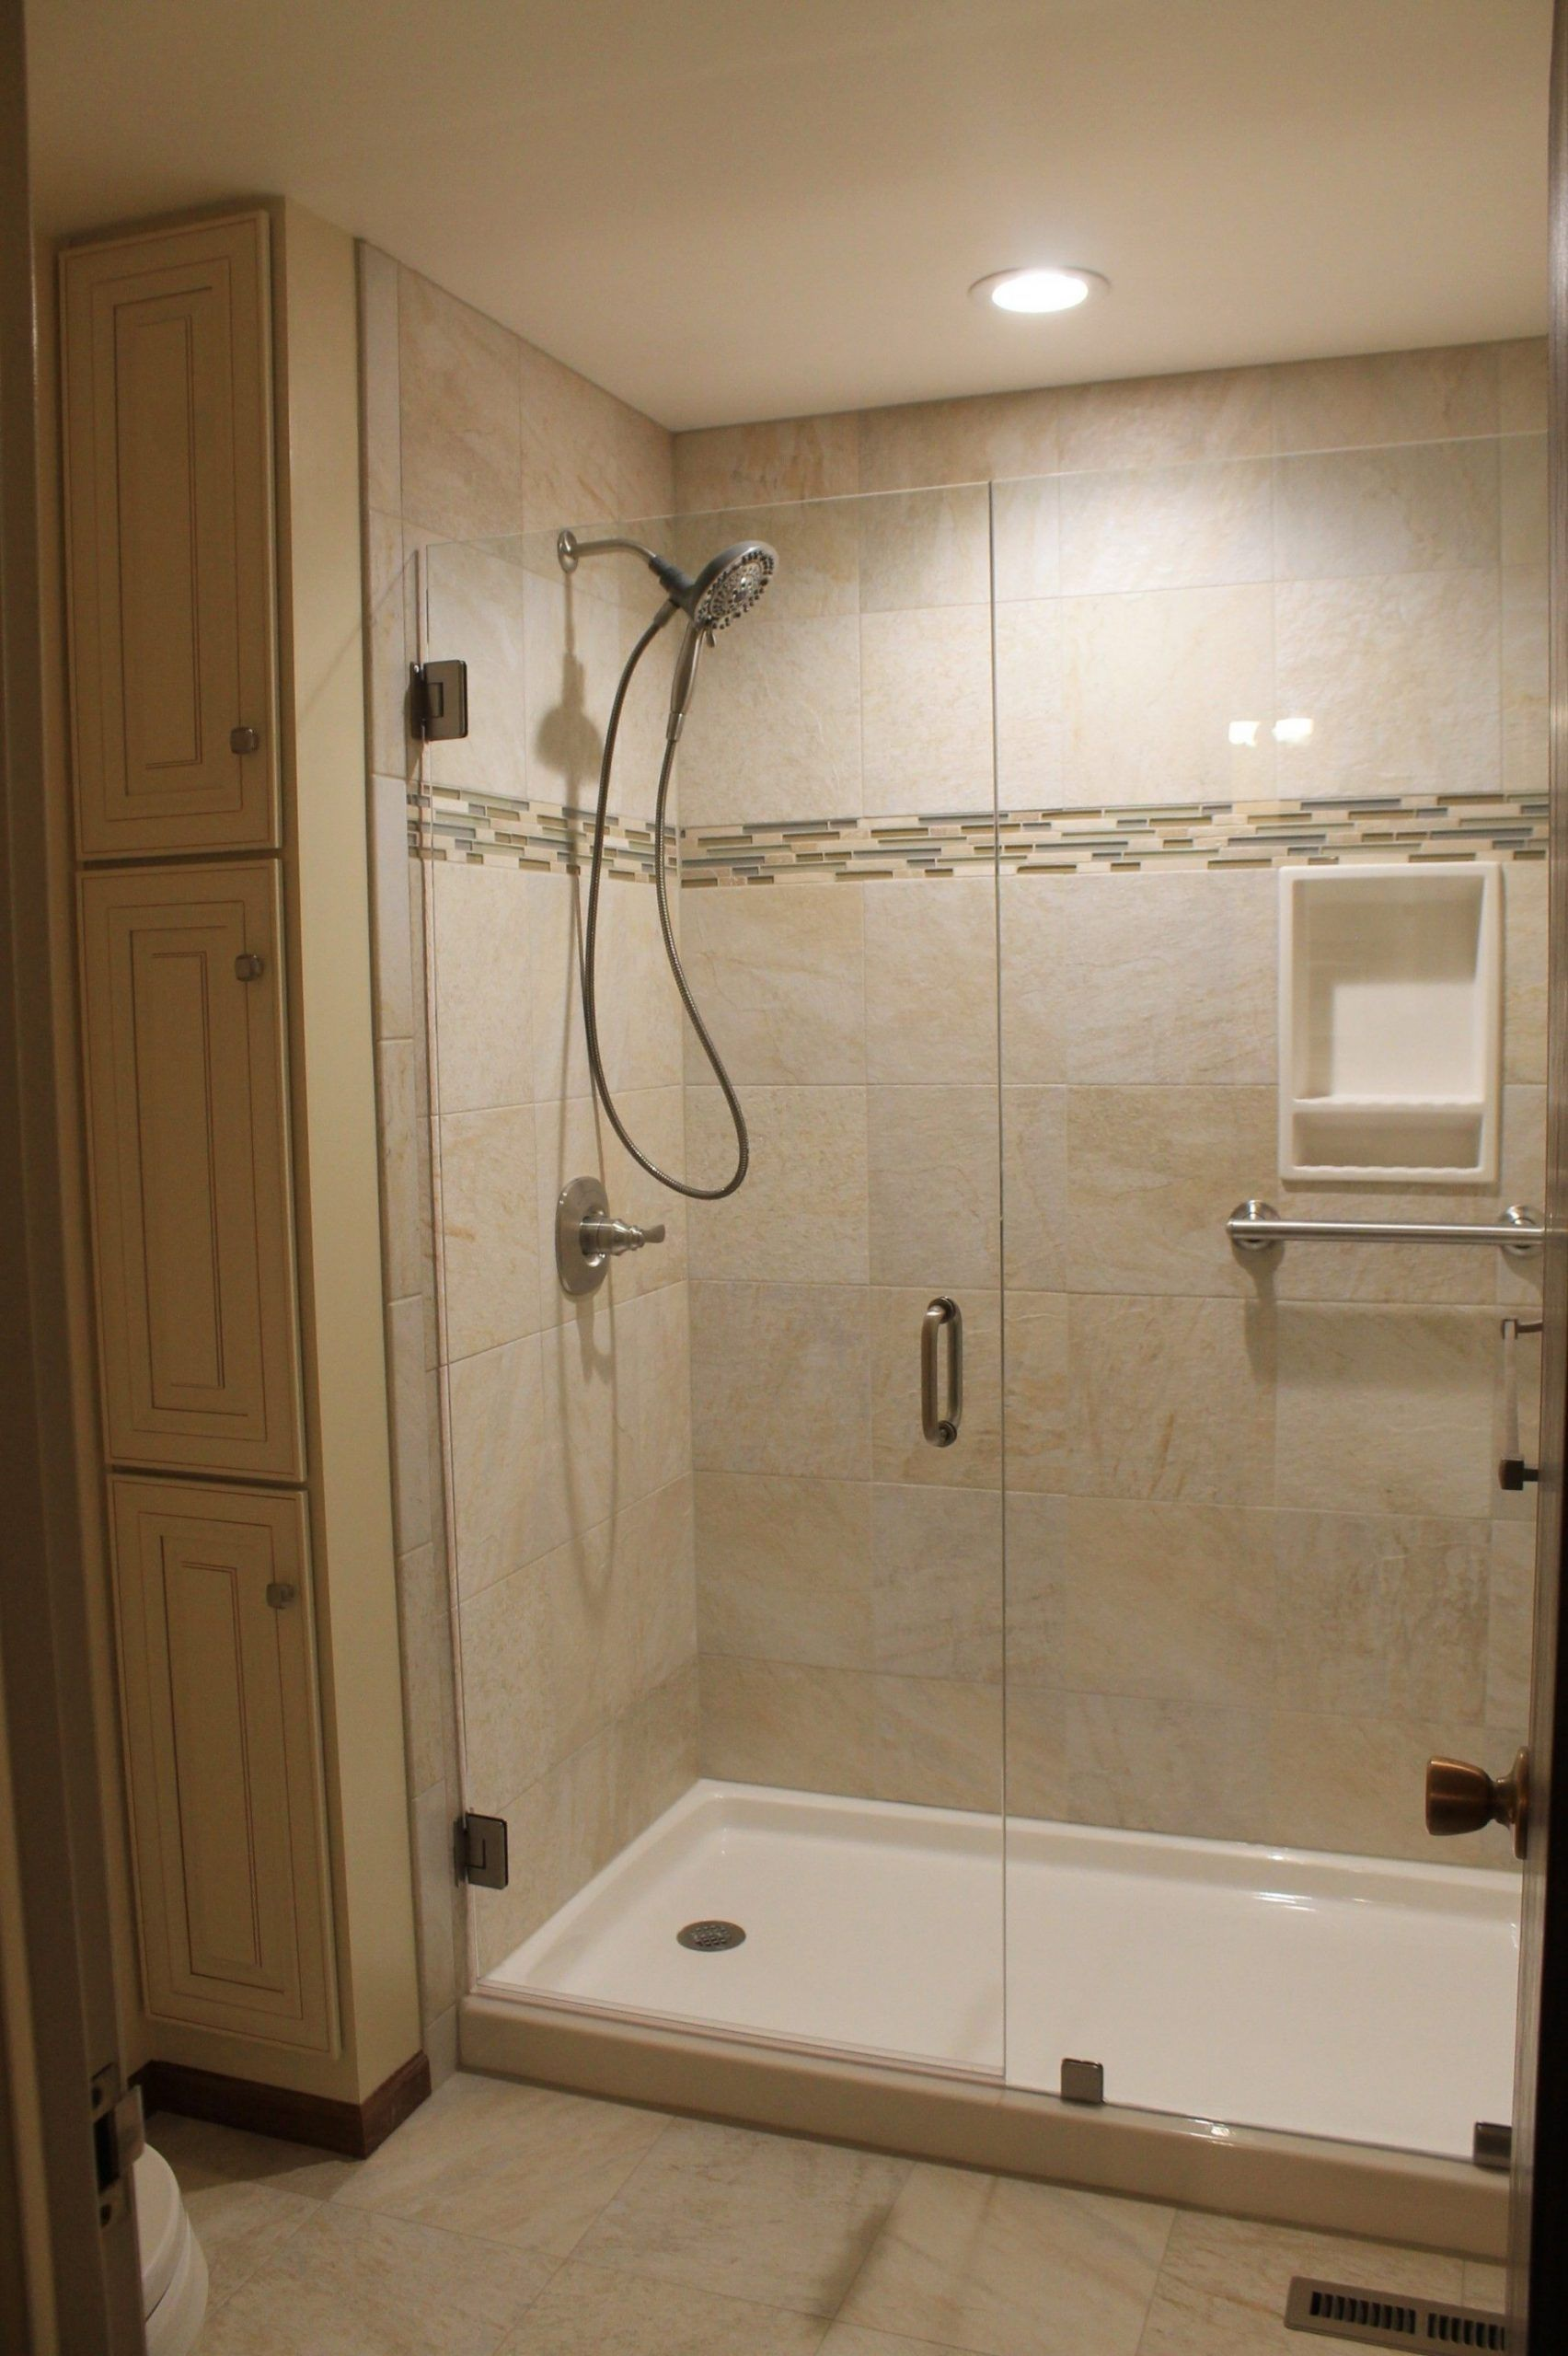 Bathroom Shower Update Ideas In 2020 Restroom Remodel Bathroom Shower Bases Bathroom Remodel Shower